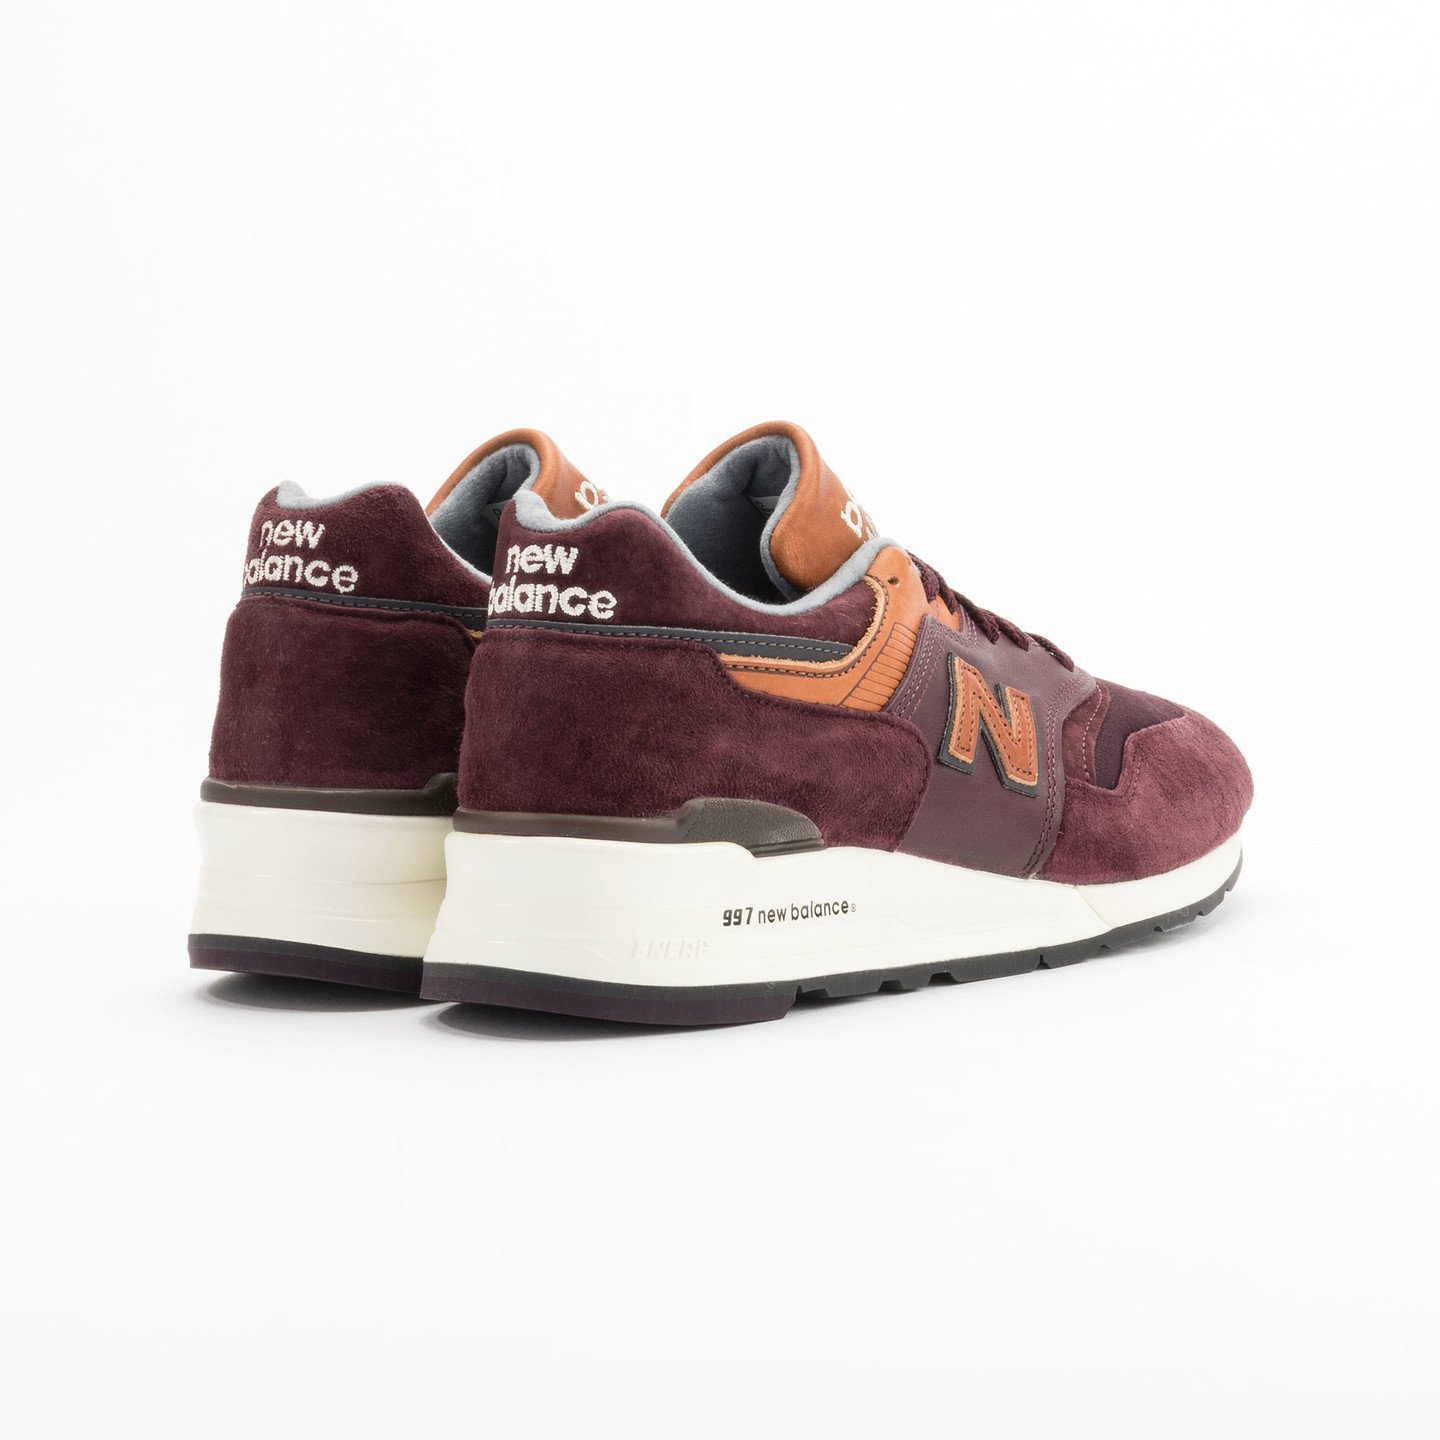 New Balance M997 Made in USA Burgundy / Light Brown M997DSLR-44